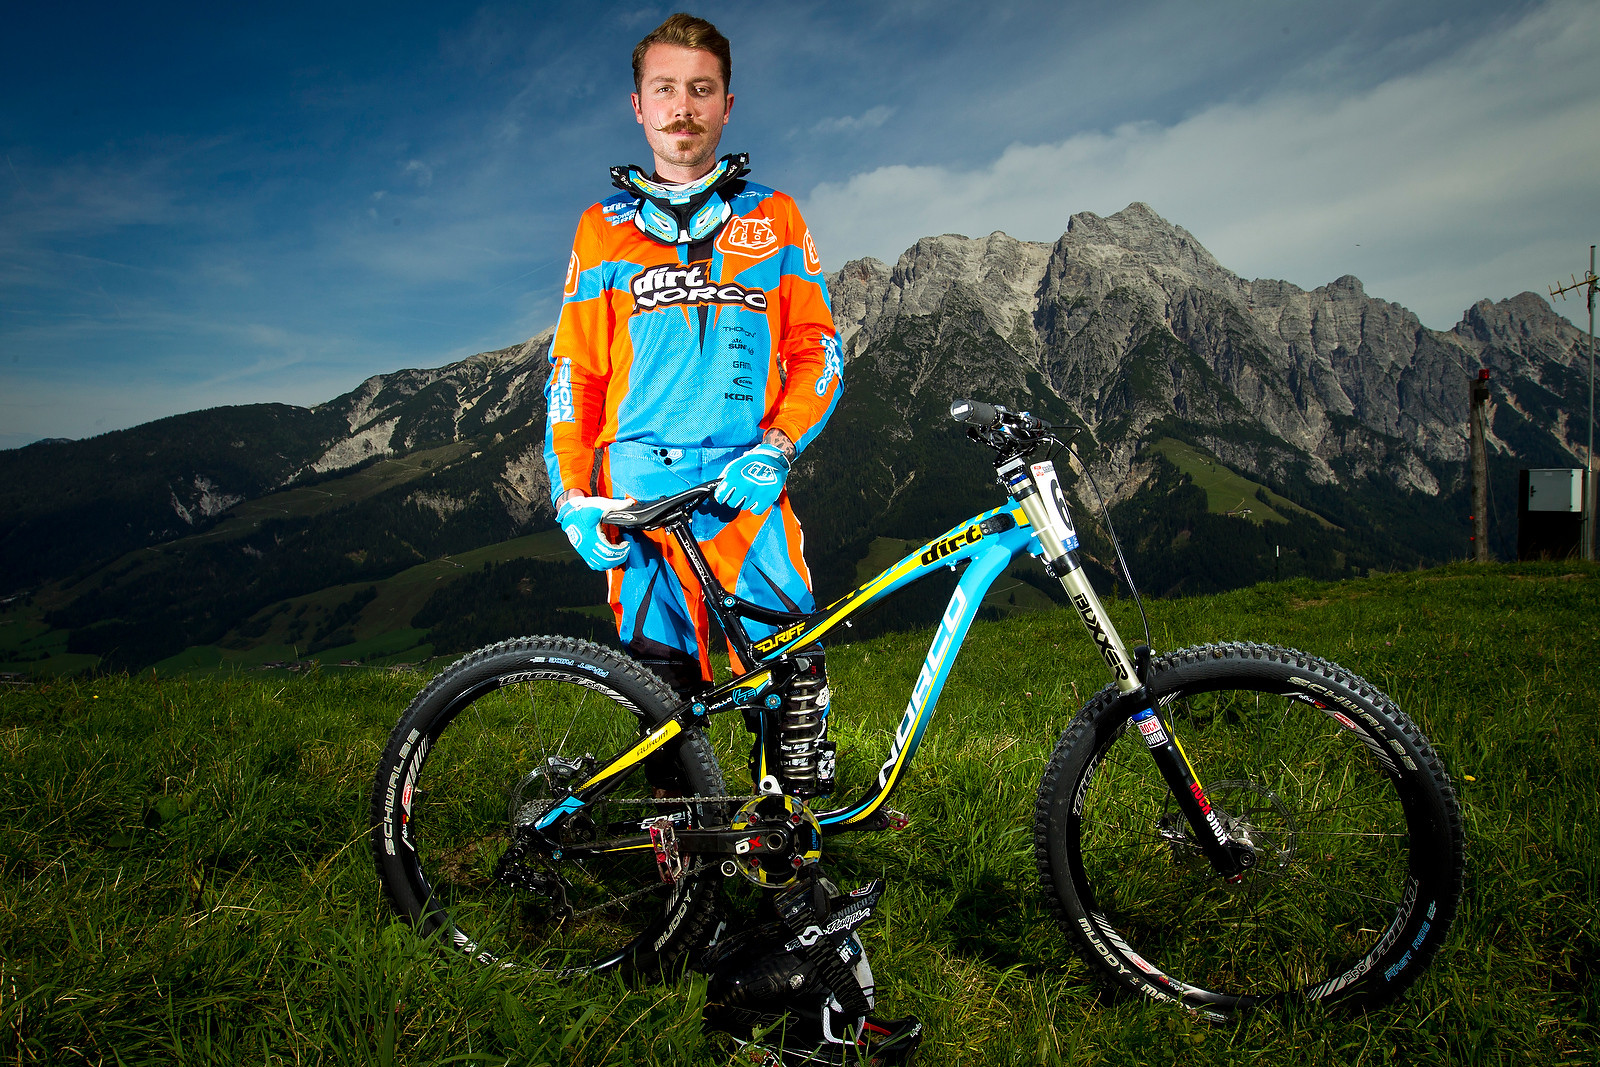 Duncan Riffle with his Norco Aurum - World Championships Riders and Bikes - Mountain Biking Pictures - Vital MTB